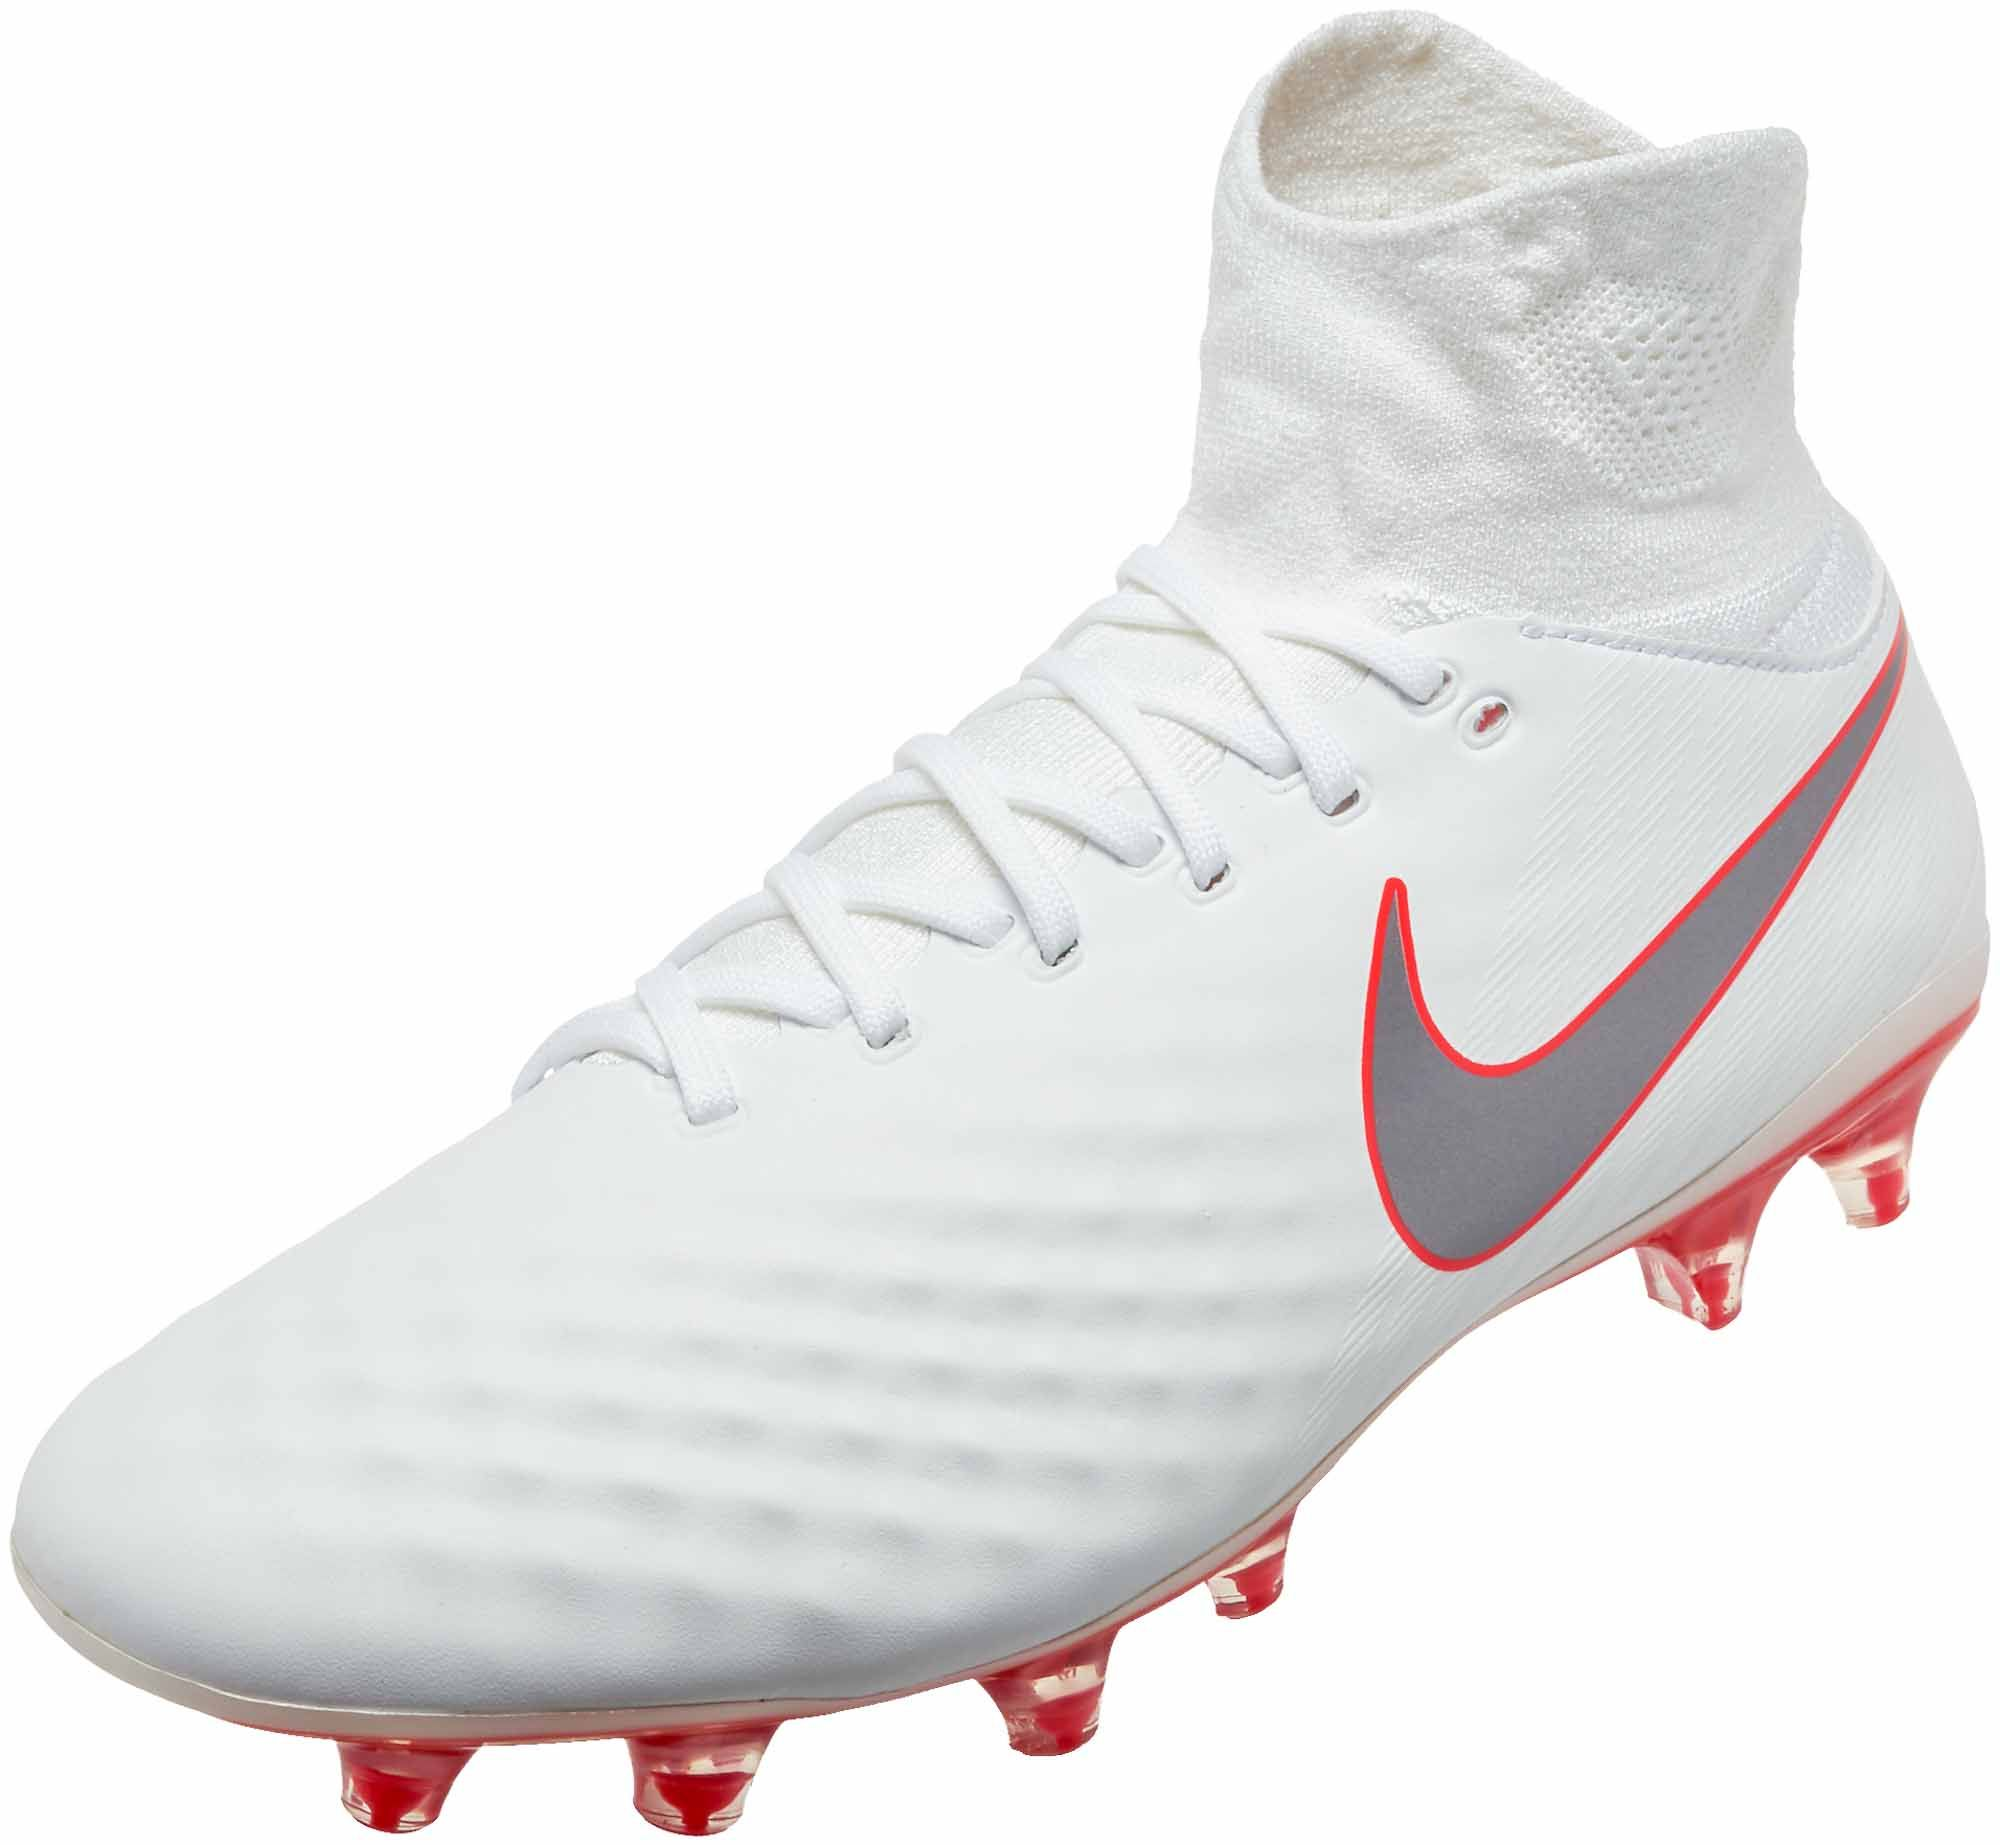 6ae970386 Nike Mercurial Vapor 12 Pro FG - White/Metallic Cool Grey/Total Orange -  SoccerPro